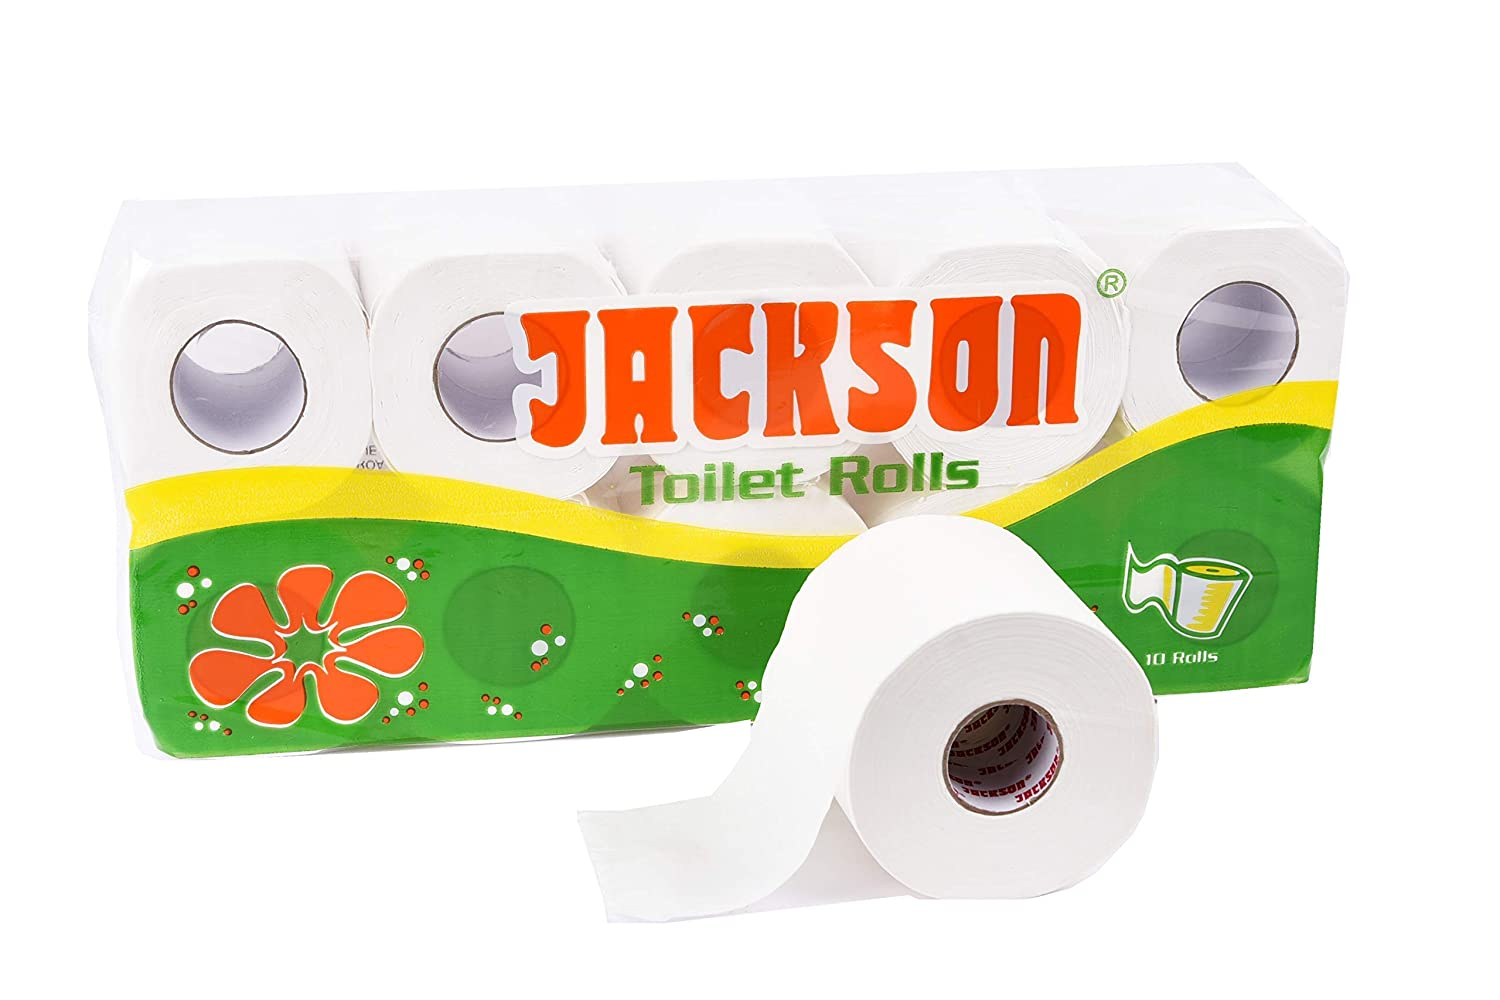 Jackson Toilet Tissue Paper Roll - 2 Ply - Pack of 10 Rolls